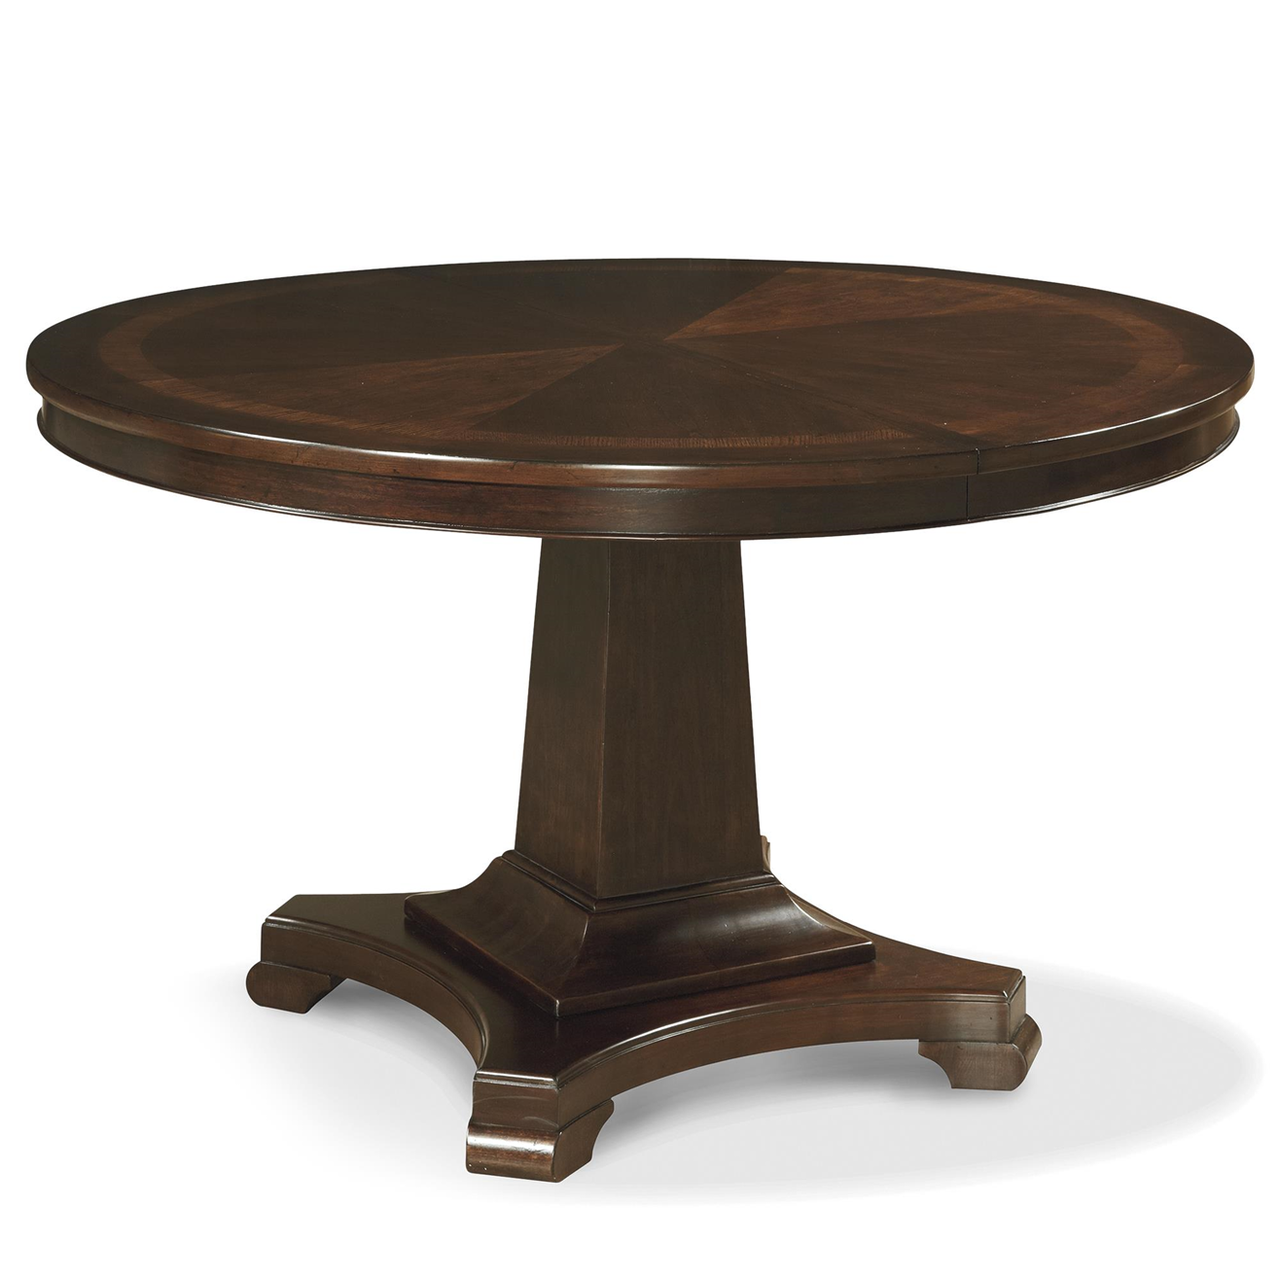 Wood Round Dining Table: Proximity Cherry Wood Extending Round Dining Table 54